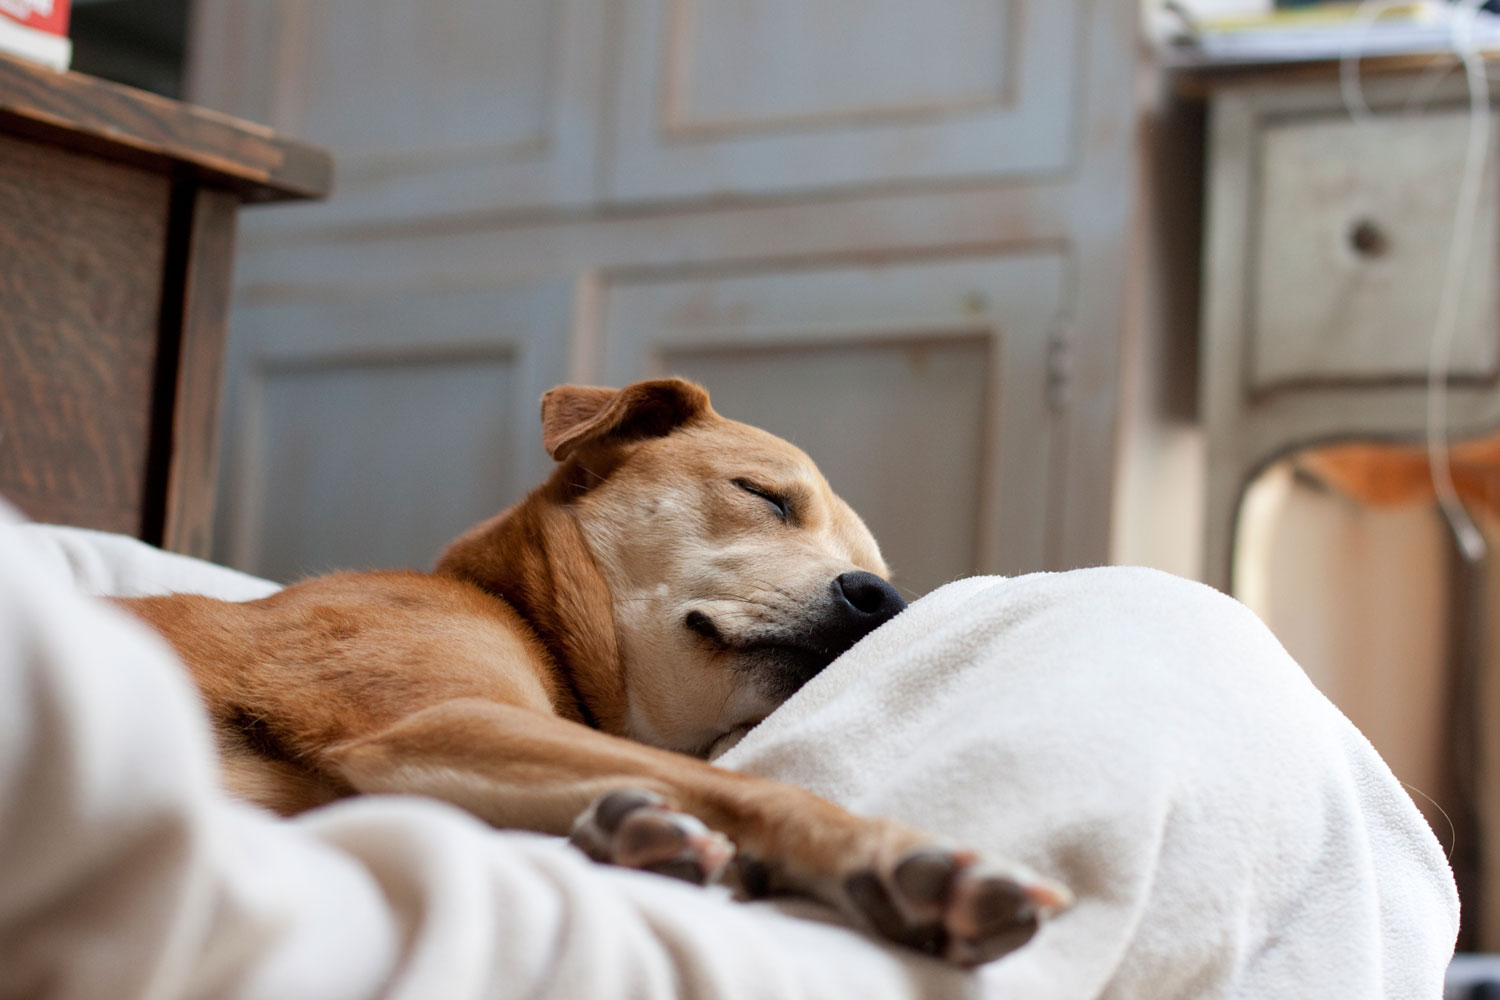 Zoe 'n Me {a dog blog} The bed of choice | Jordan benShea | Santa Barbara, California